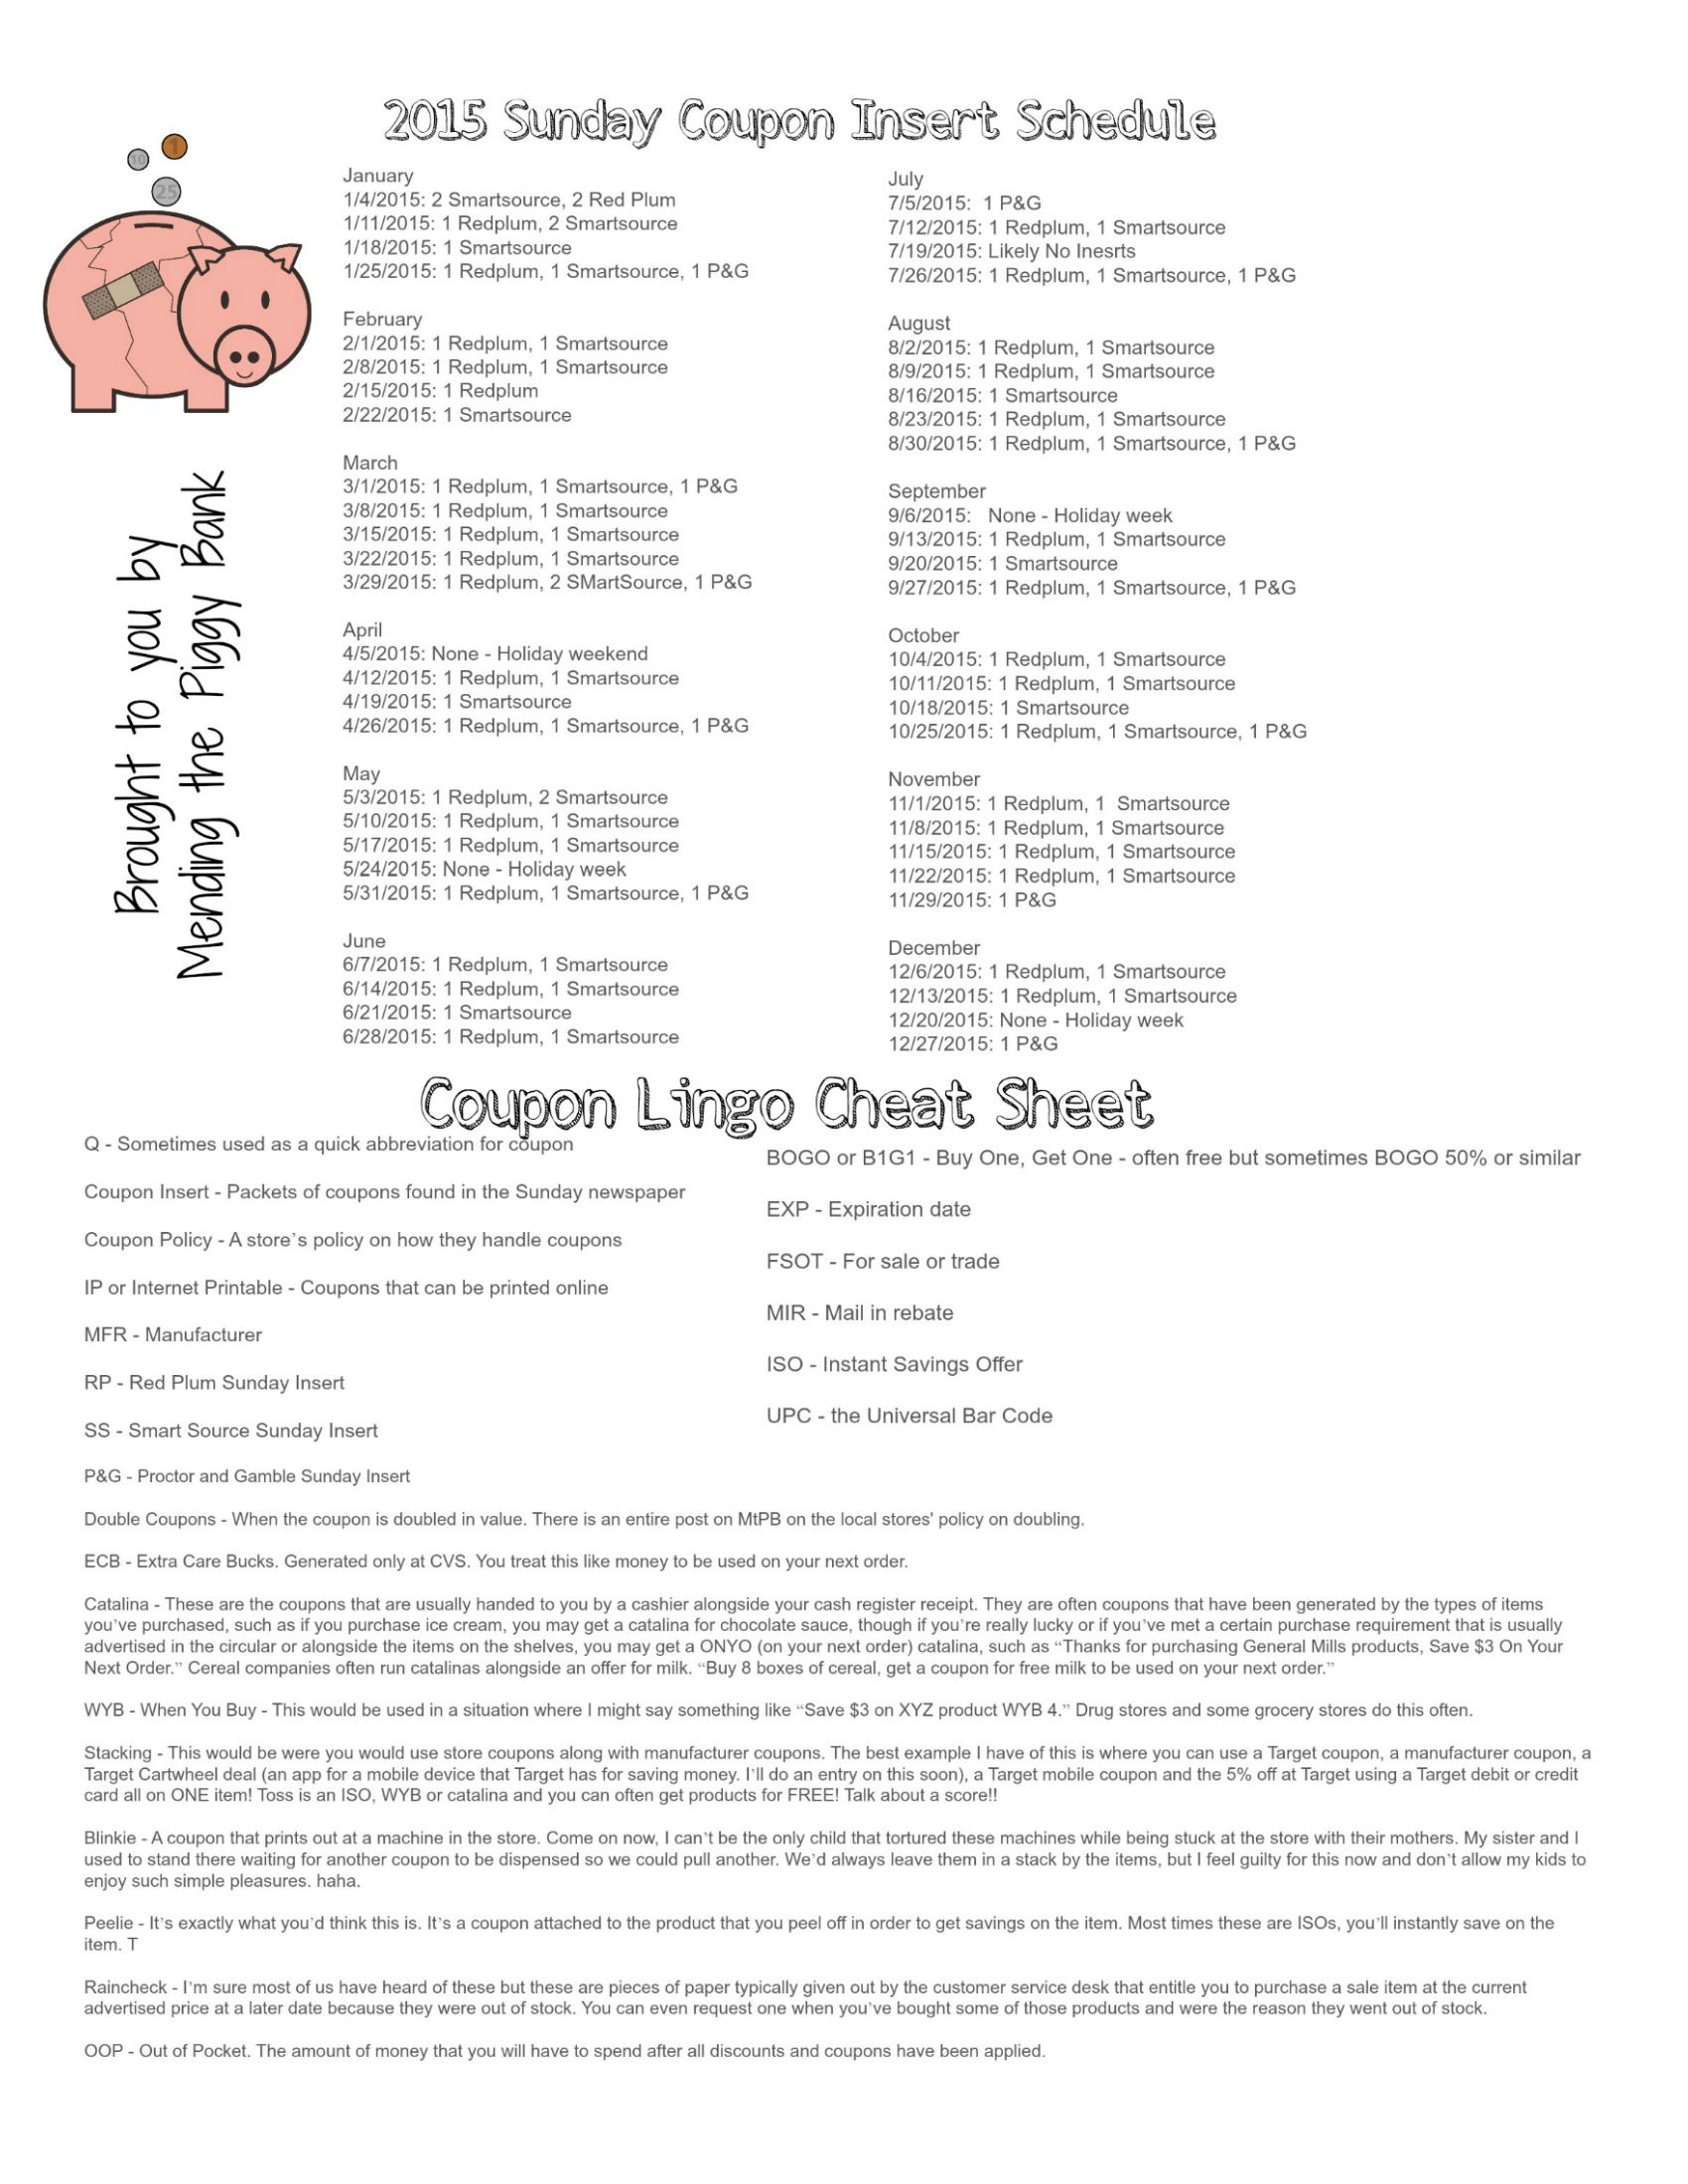 Free Printable 2015 Sunday Coupon Insert Schedule And Coupon Lingo